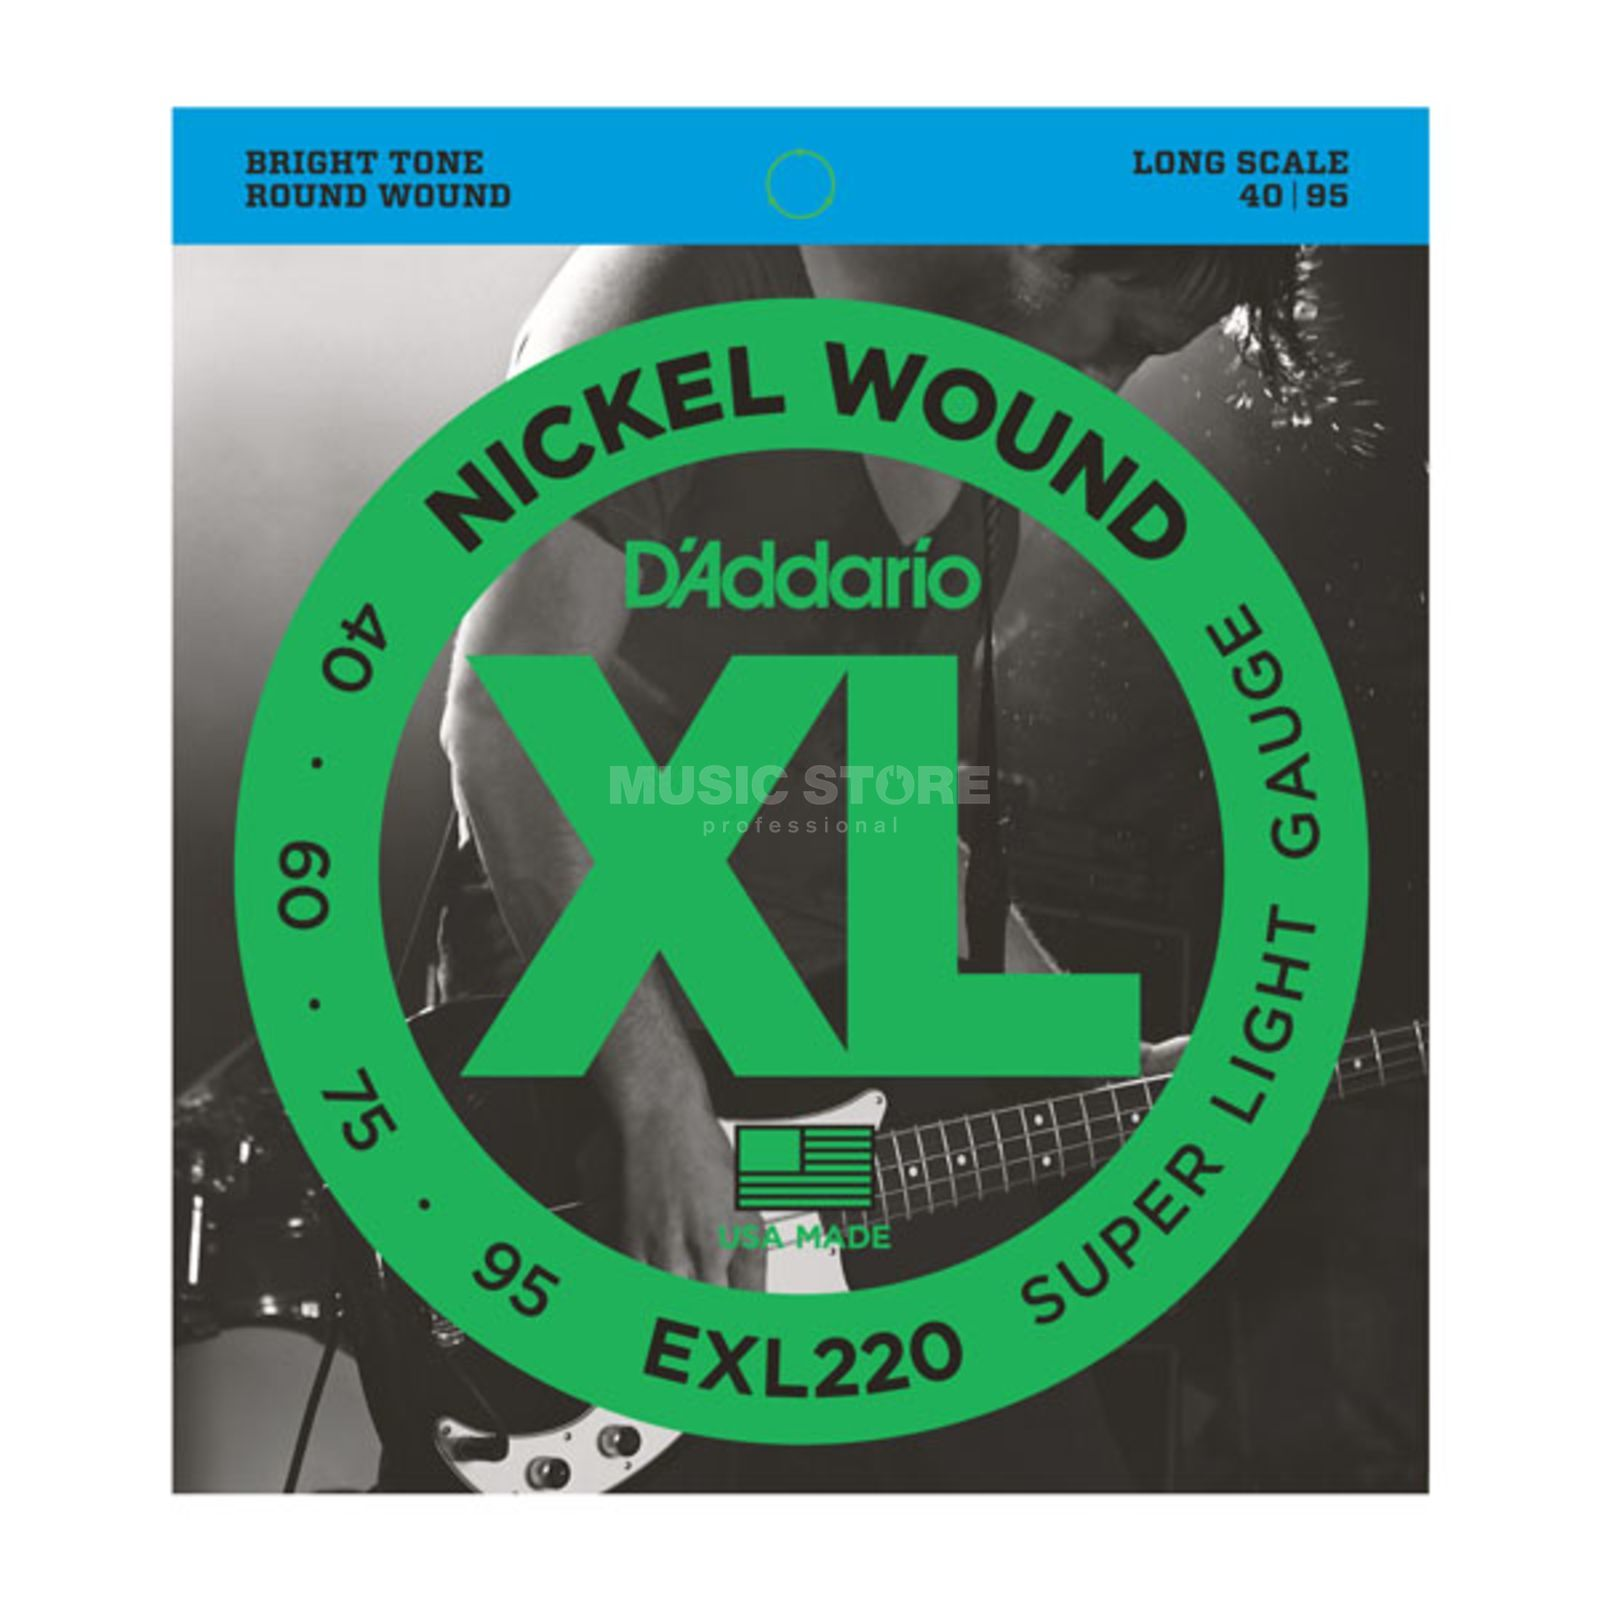 D'Addario Bass Strings XL Nickel 40-095 40-60-75-95, EXL220 Product Image